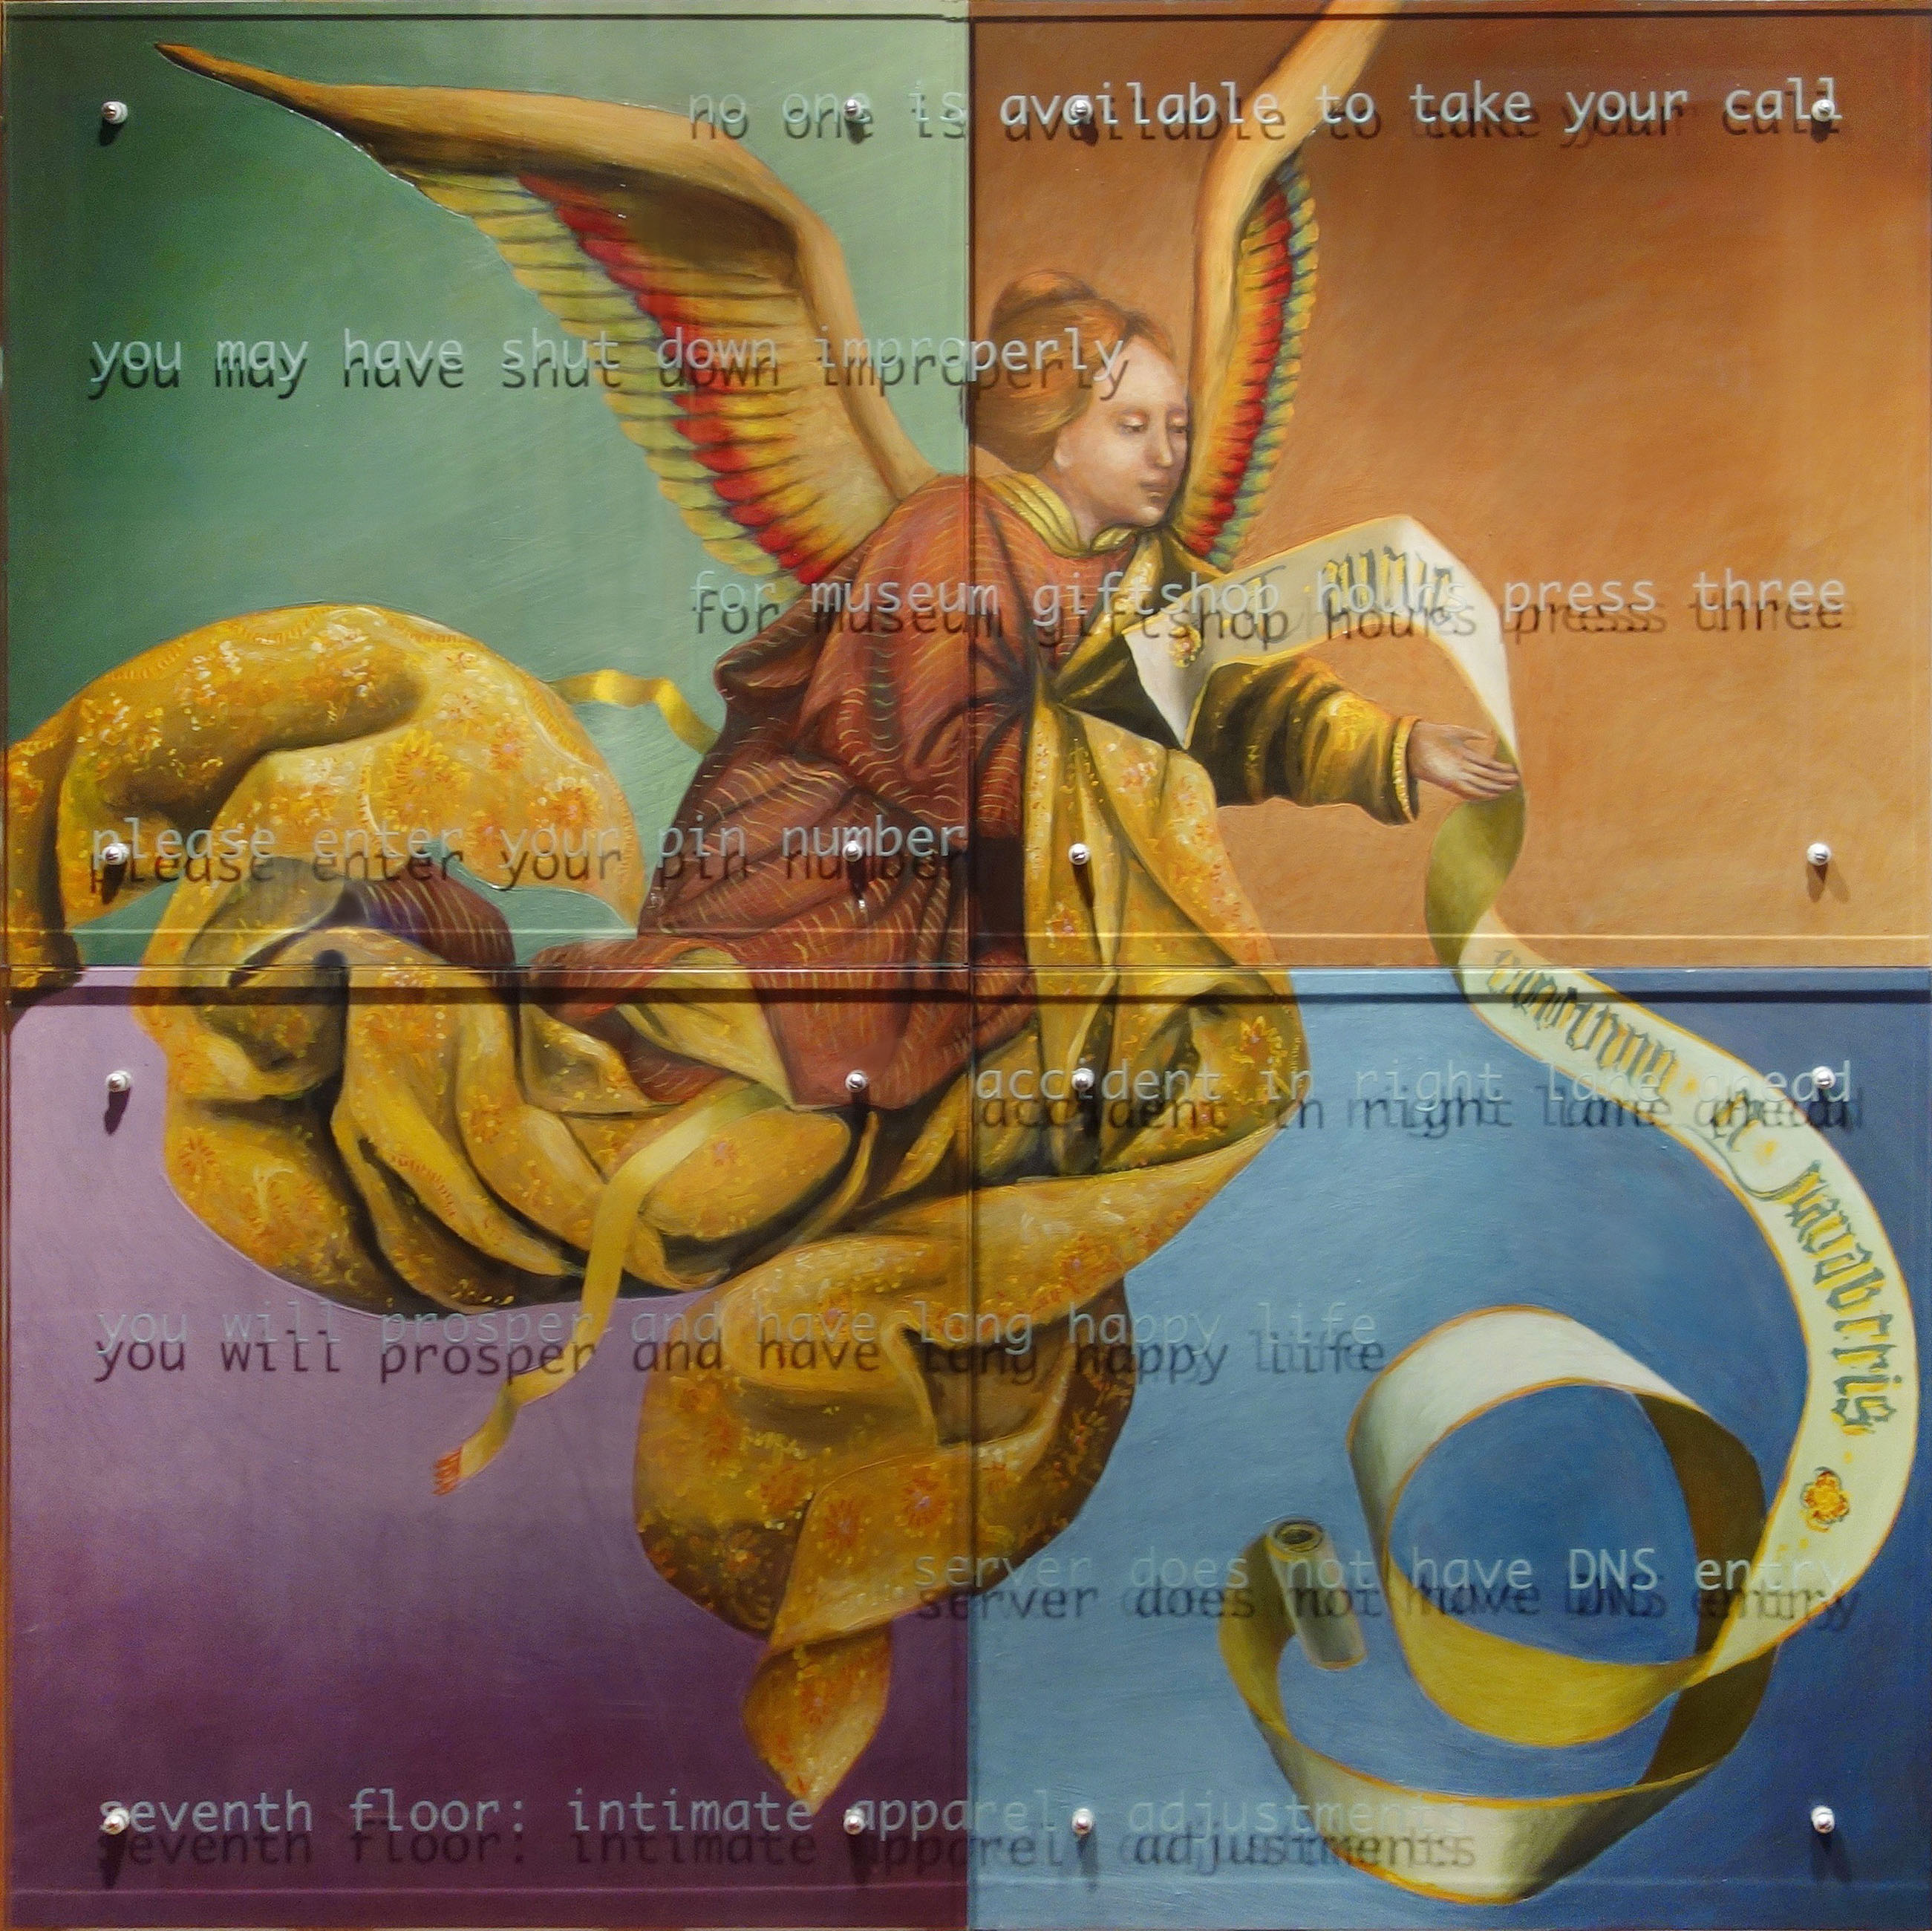 "Ken Aptekar, You will prosper and have long happy life, 2000-2016, four panels, 60"" x 60"" overall, oil/wood, sandblasted glass, bolts TEXT: no one is available to take your call, you may have shut down improperly, for museum giftshop hours, press three, please enter your pin number, accident in right lane ahead, you will prosper and have long happy life, server does not have DNS entry, seventh floor: intimate apparel, adjustments"